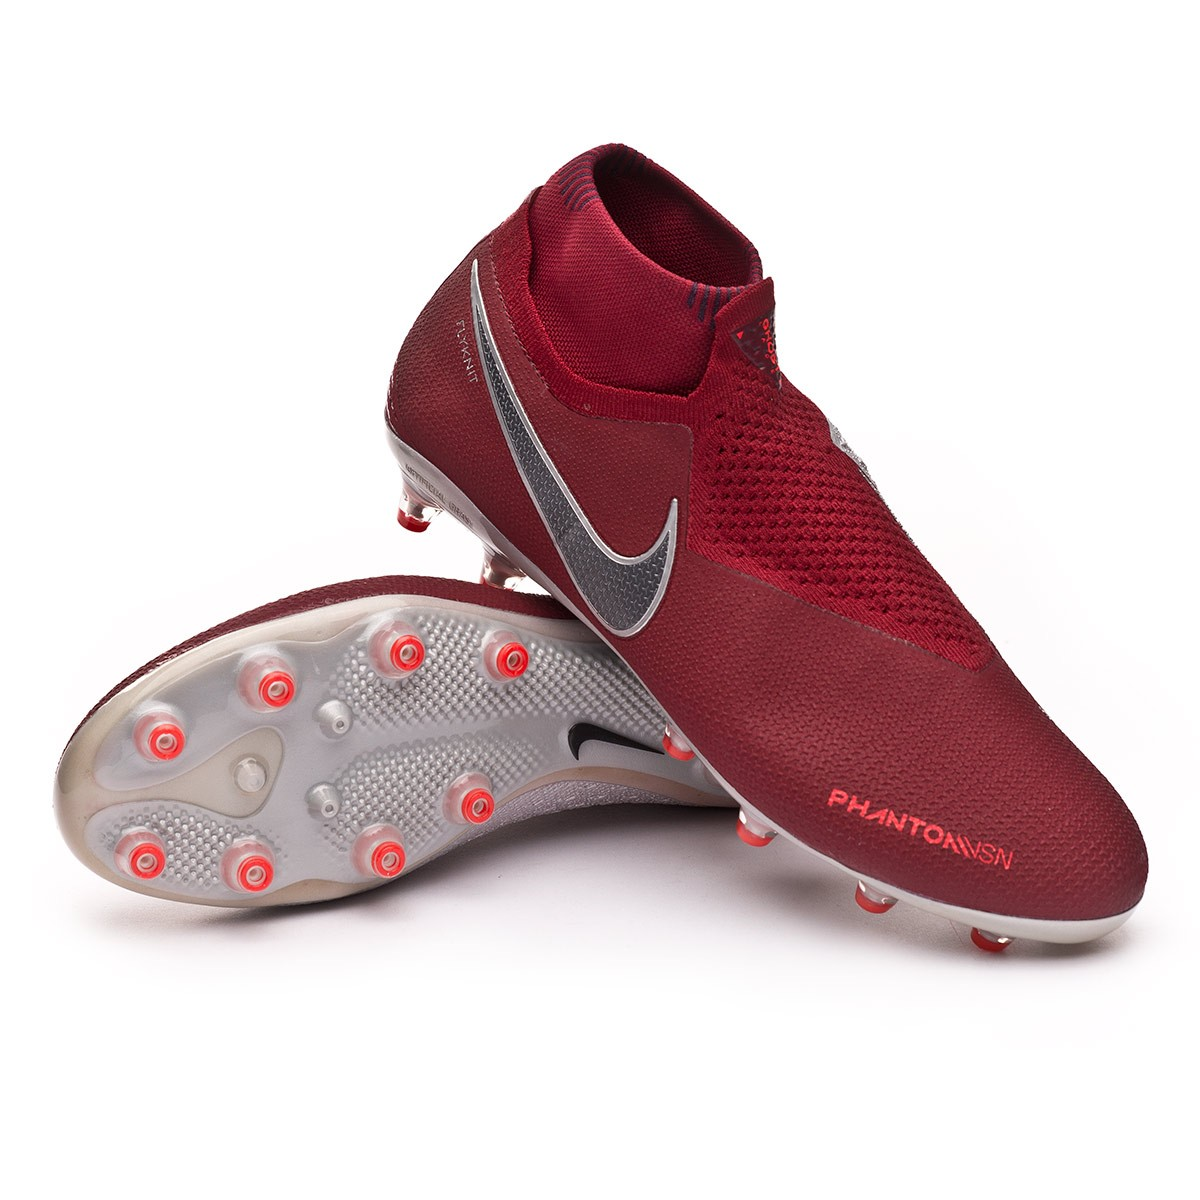 3420691b8 Football Boots Nike Phantom Vision Elite DF AG-Pro Team red-Metallic ...